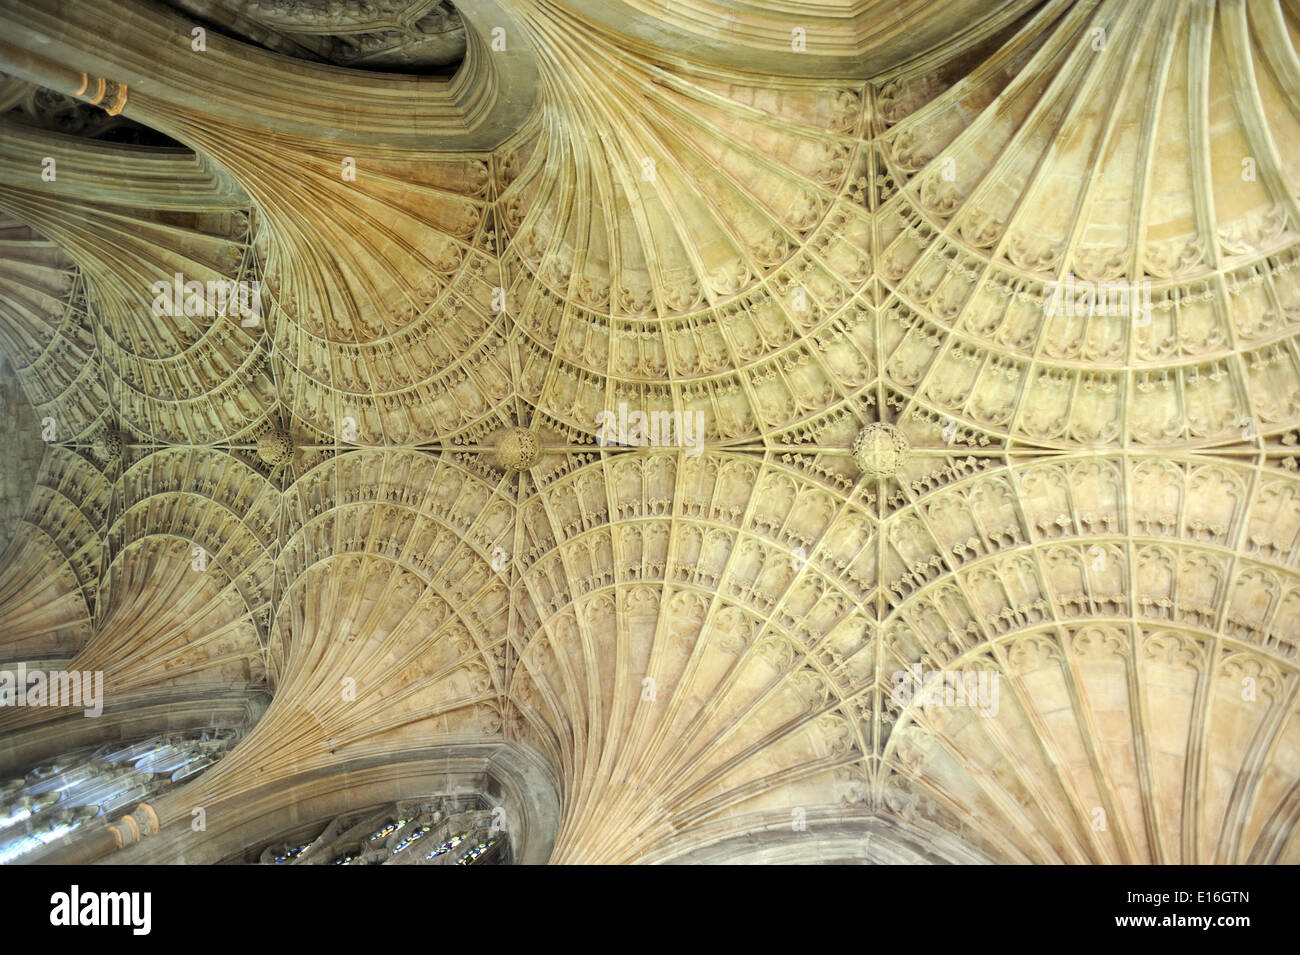 Ornate fan vaulting forms the roof of Peterborough Cathedral. Peterborough, Cambridgeshire. UK. - Stock Image